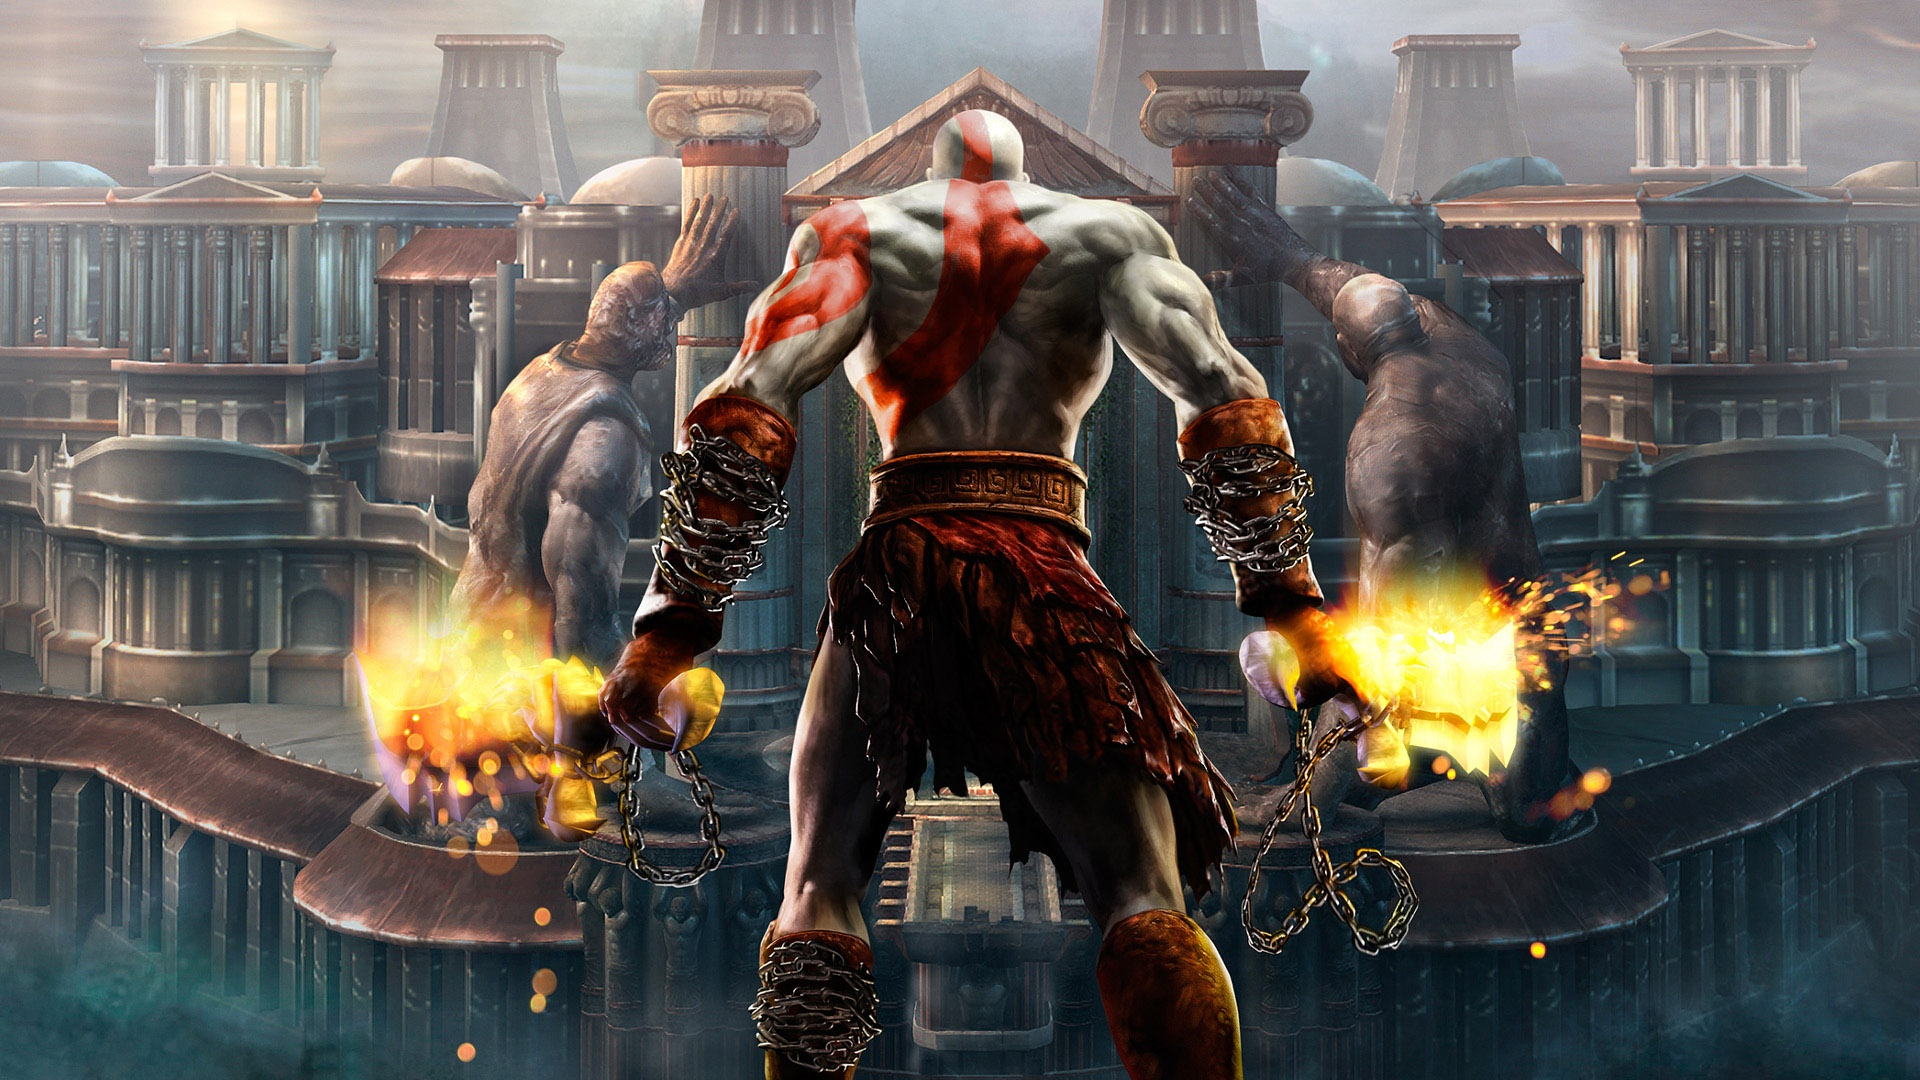 God Of War 4 Hd Wallpaper Hd Wallpapers